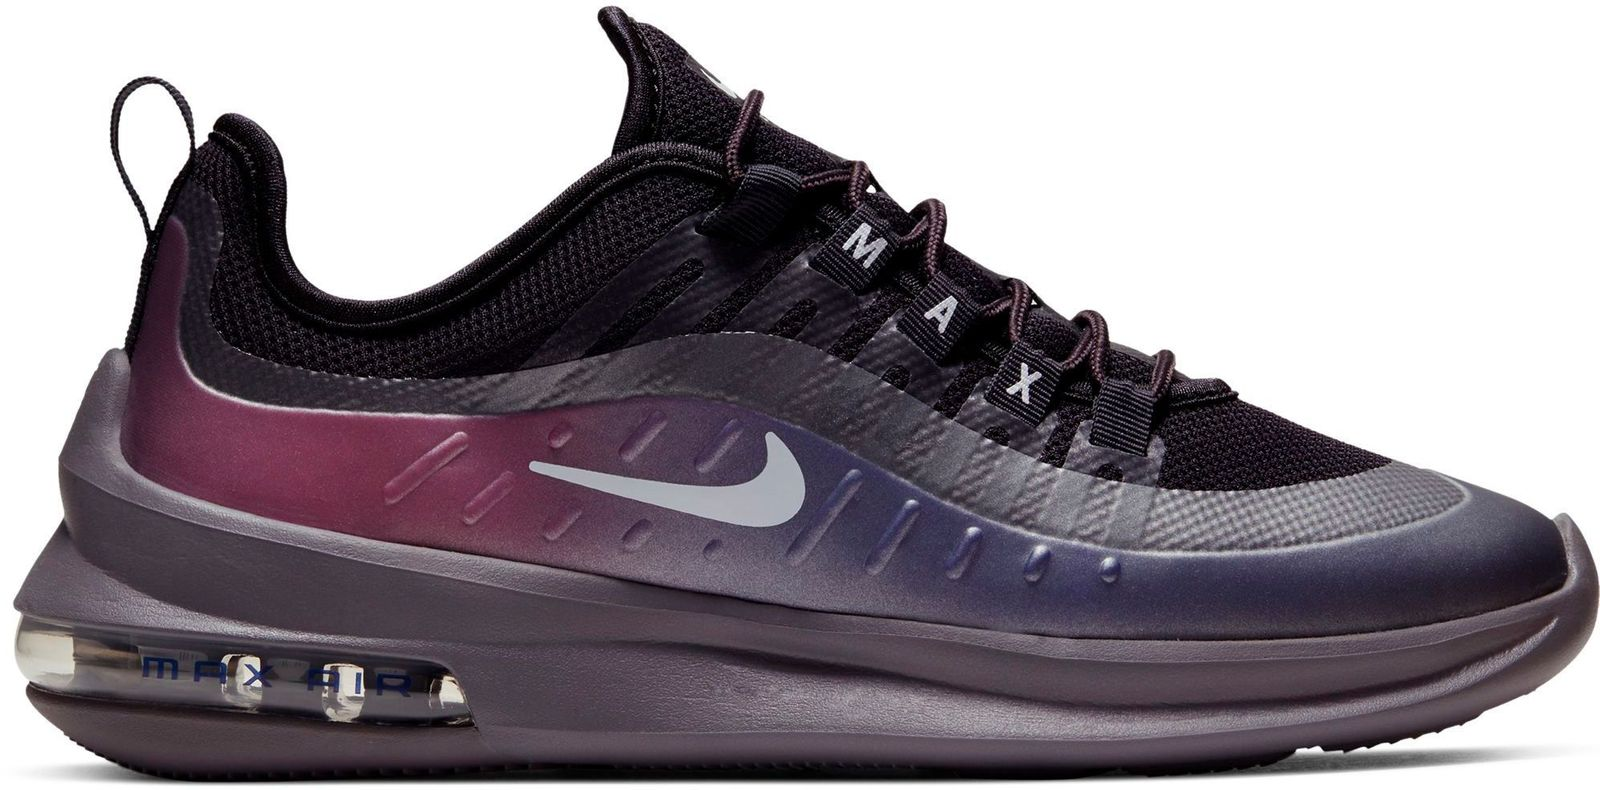 Details about Nike Ladies Fitness Freizeit Schuhe Trainers Wmns Air Max Axis